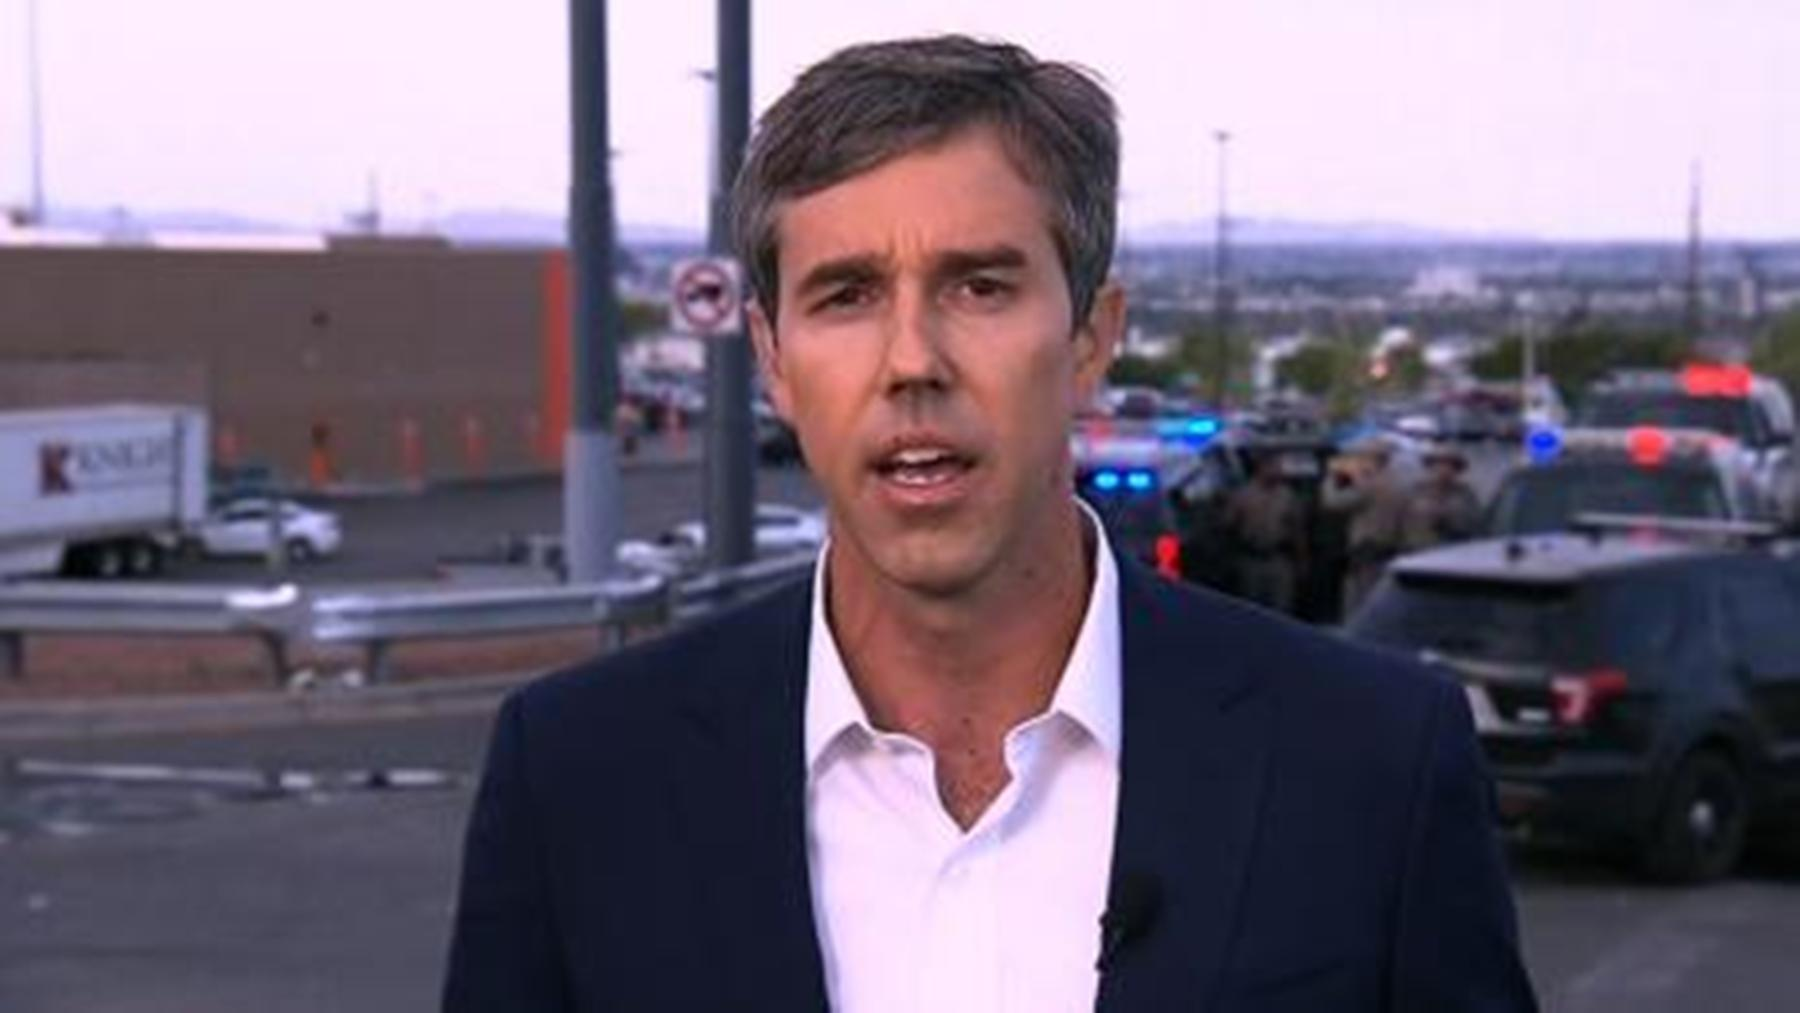 Beto O'Rourke Blasts President Donald Trump For Texas Mass Shooting By Patrick Crusius